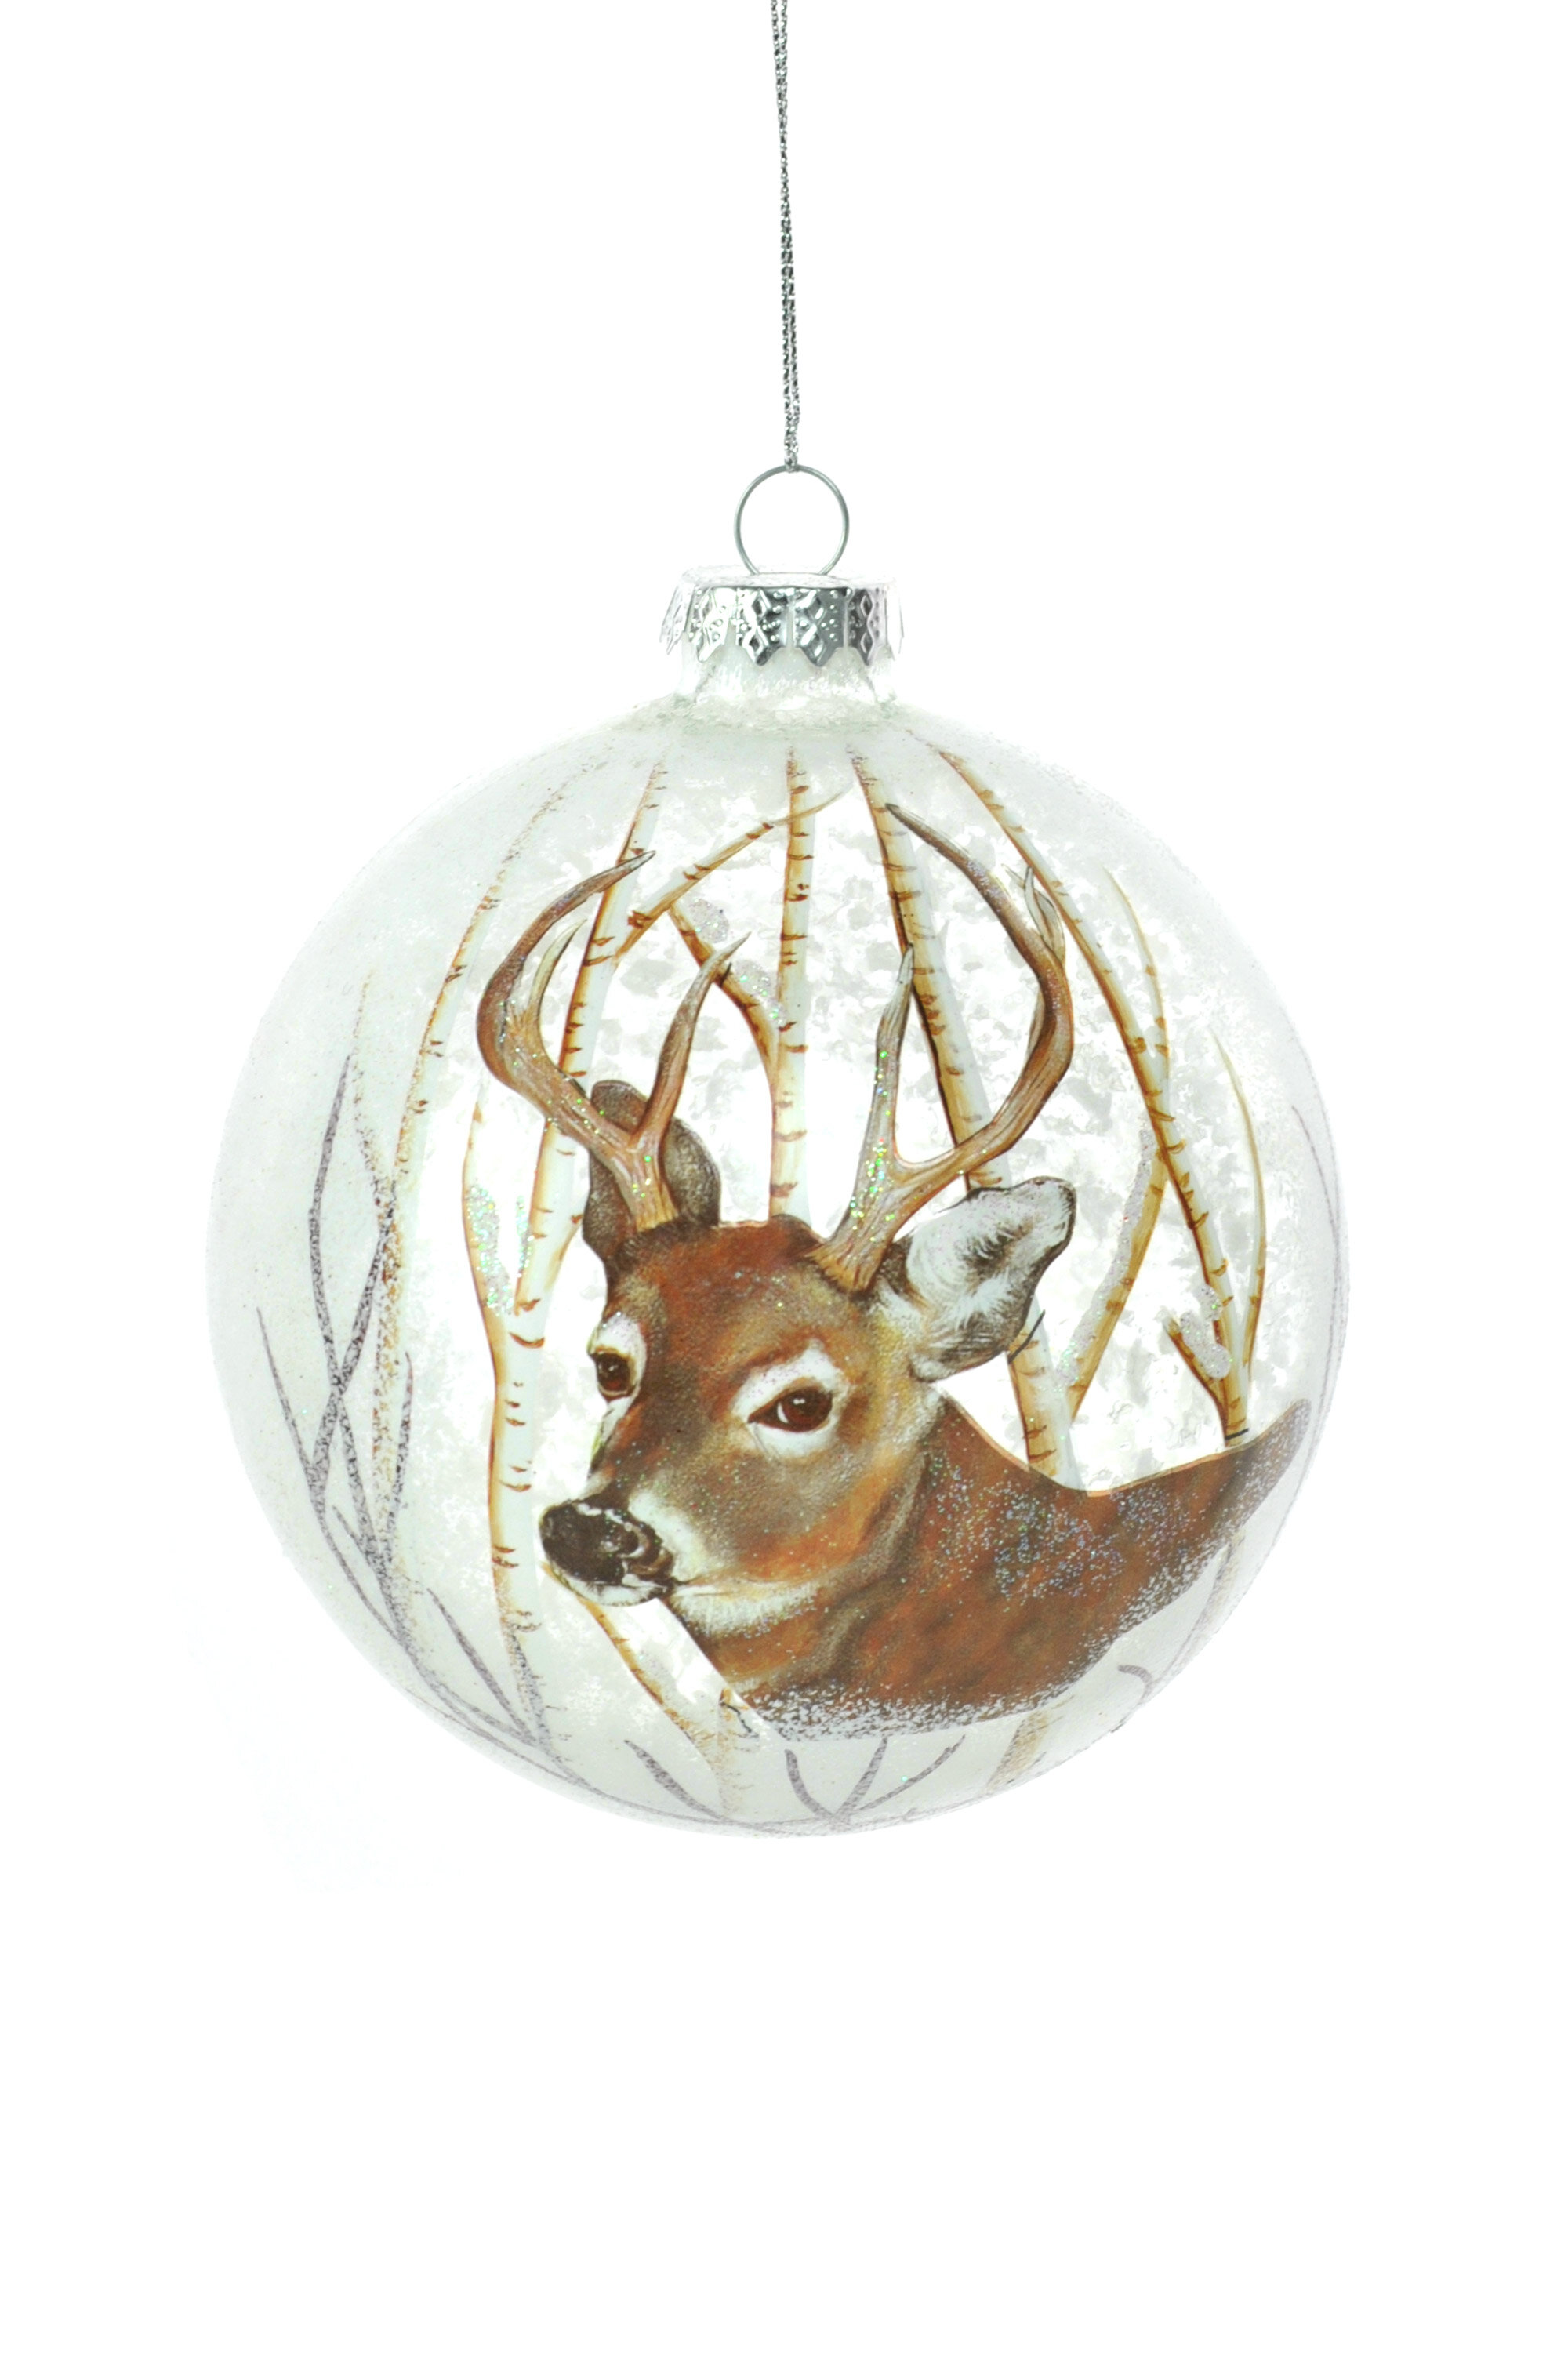 The Holiday Aisle Glass Opaque Ball With Reindeer Ball Ornament Wayfair